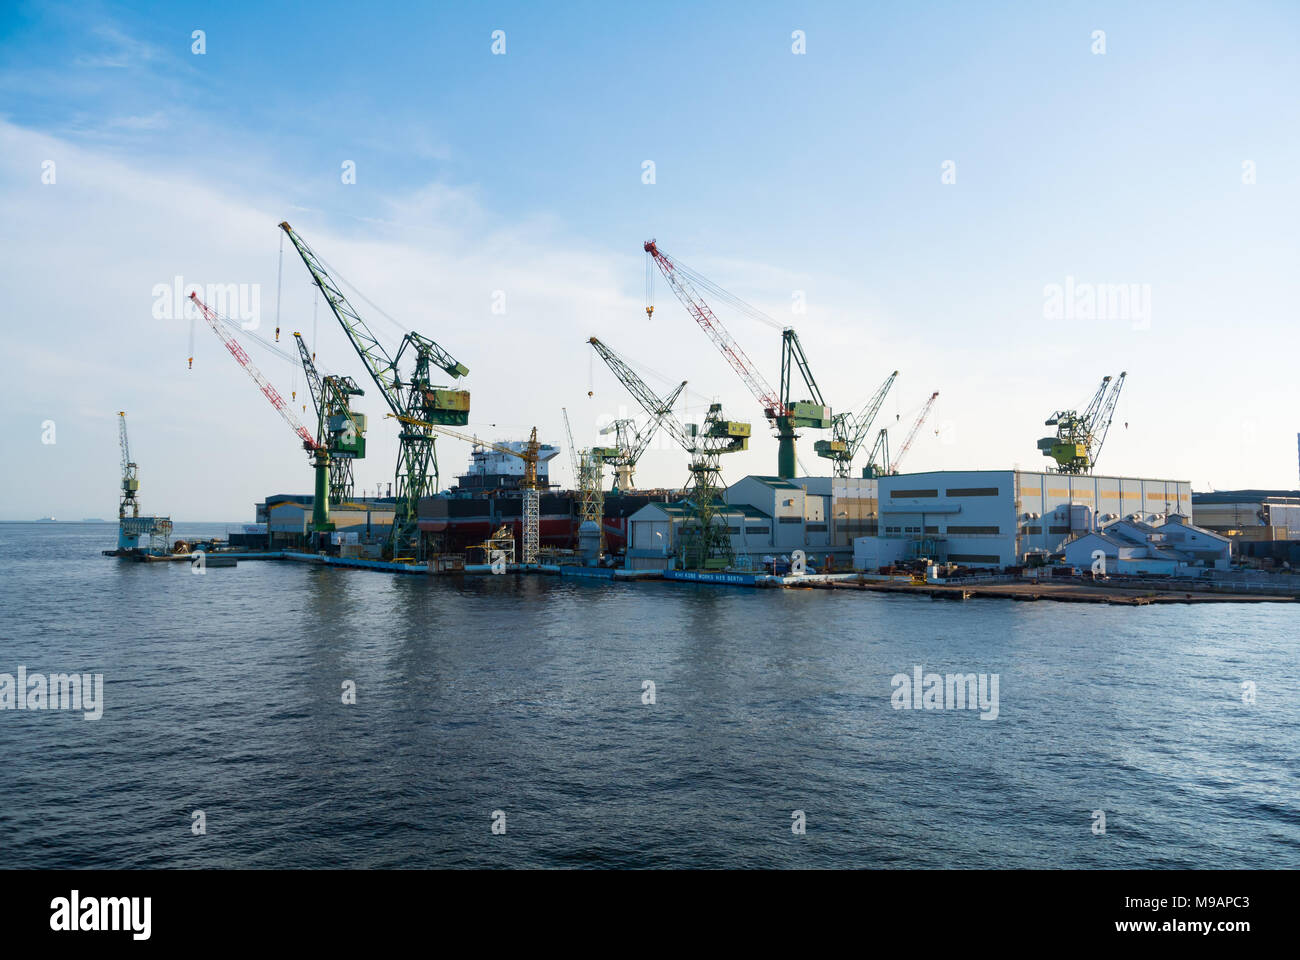 Kawasaki Heavy Industries Kobe Works, kobe, hyogo prefecture, japan - Stock Image